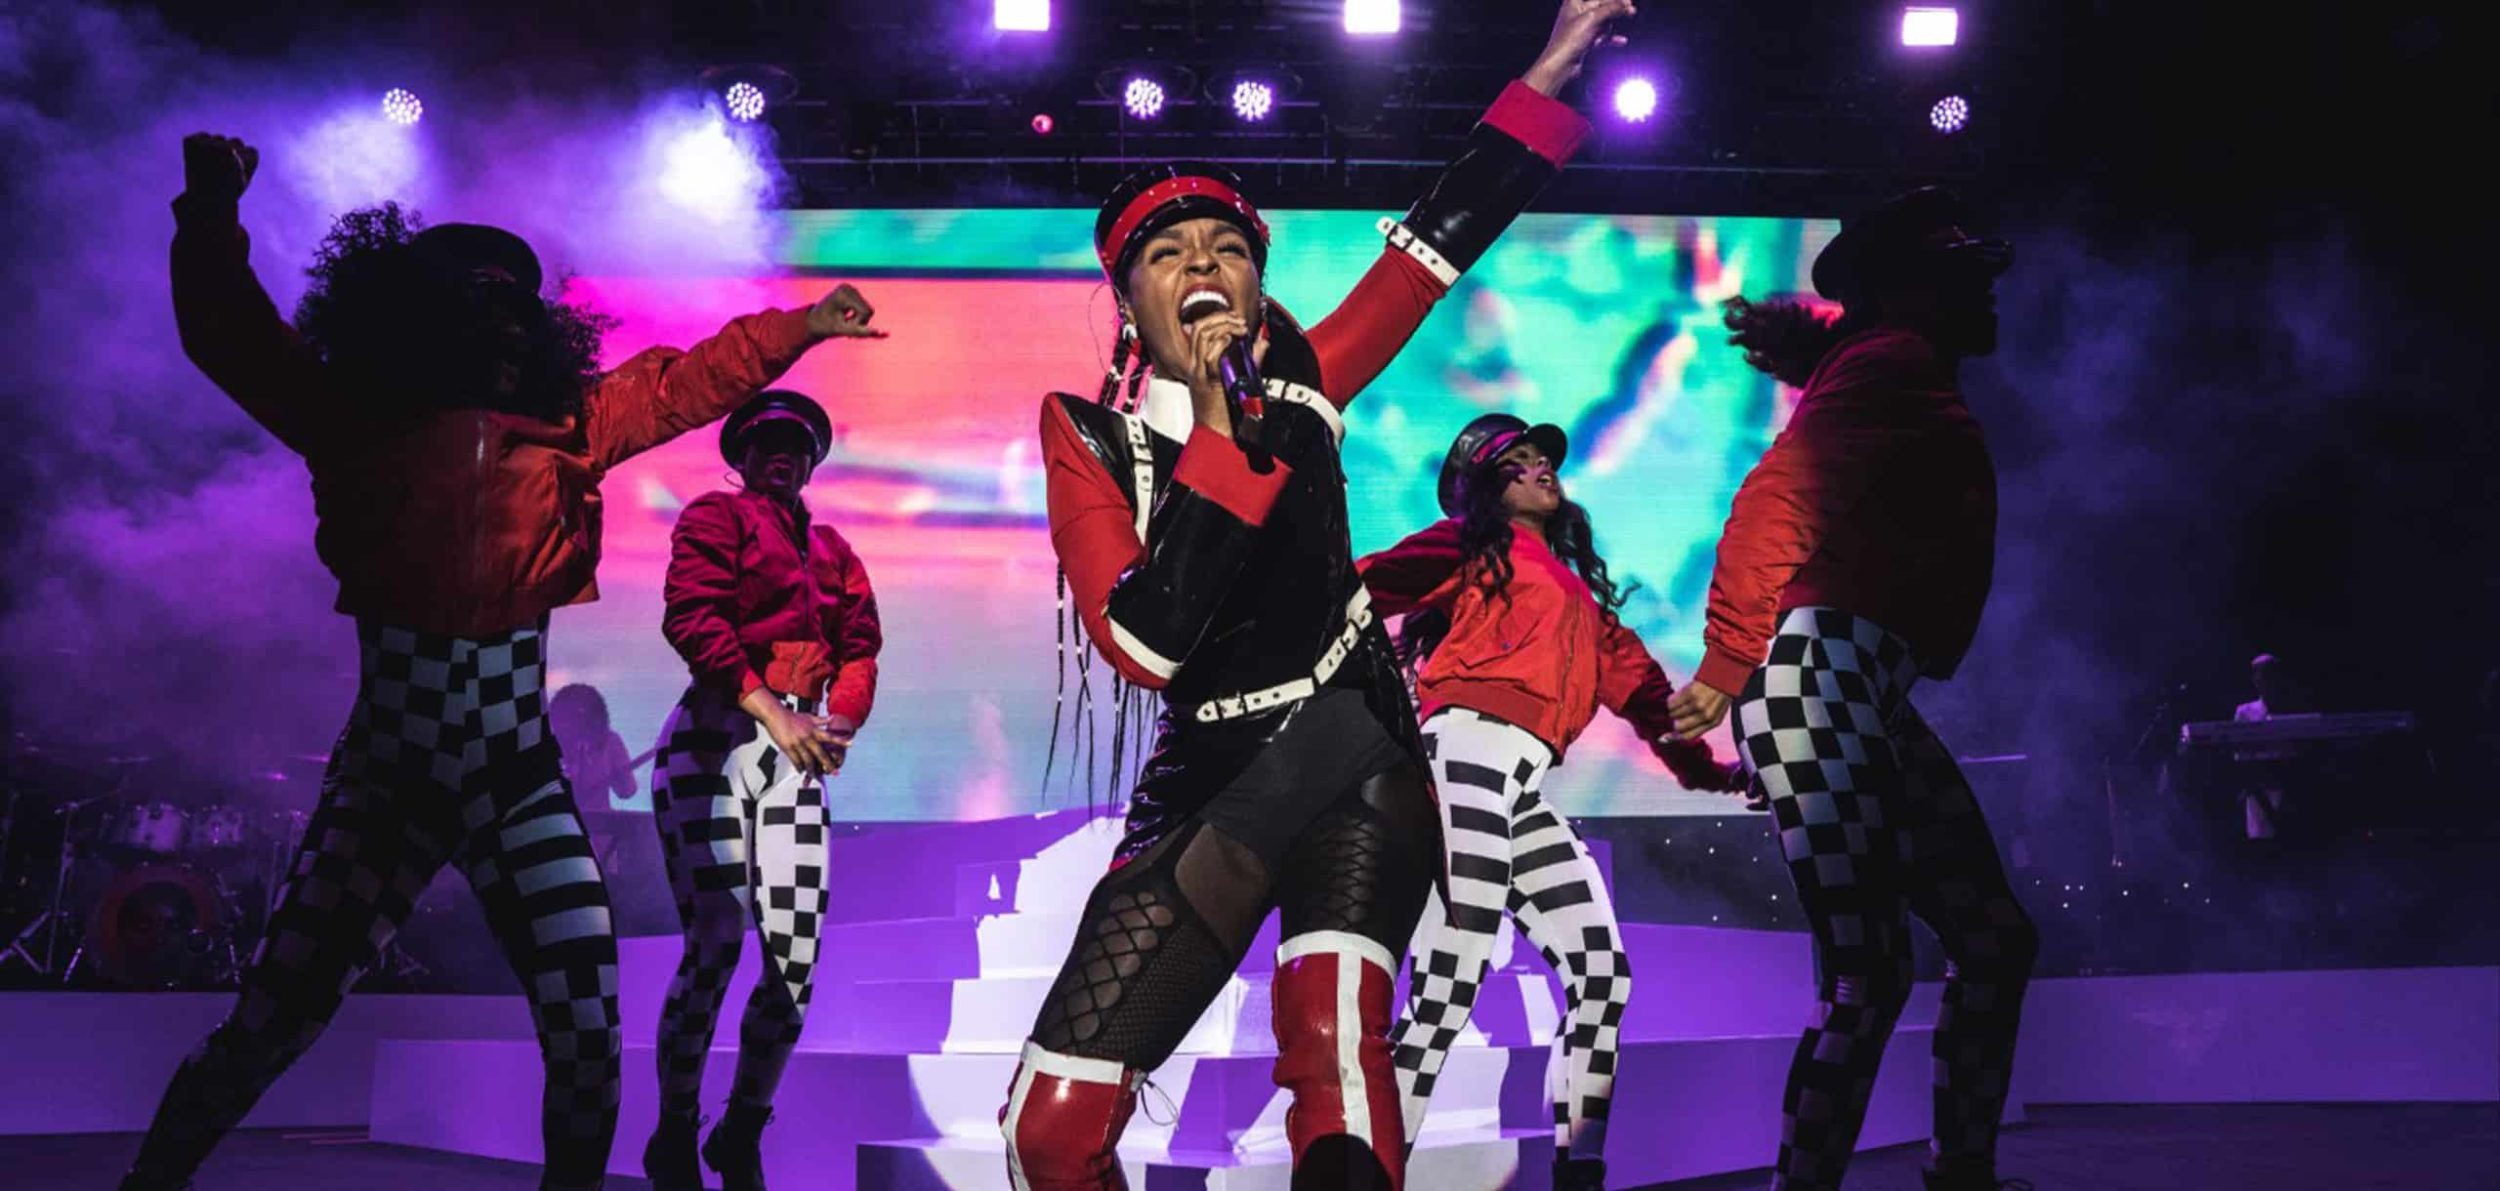 Janelle Monáe performing at Pier 17